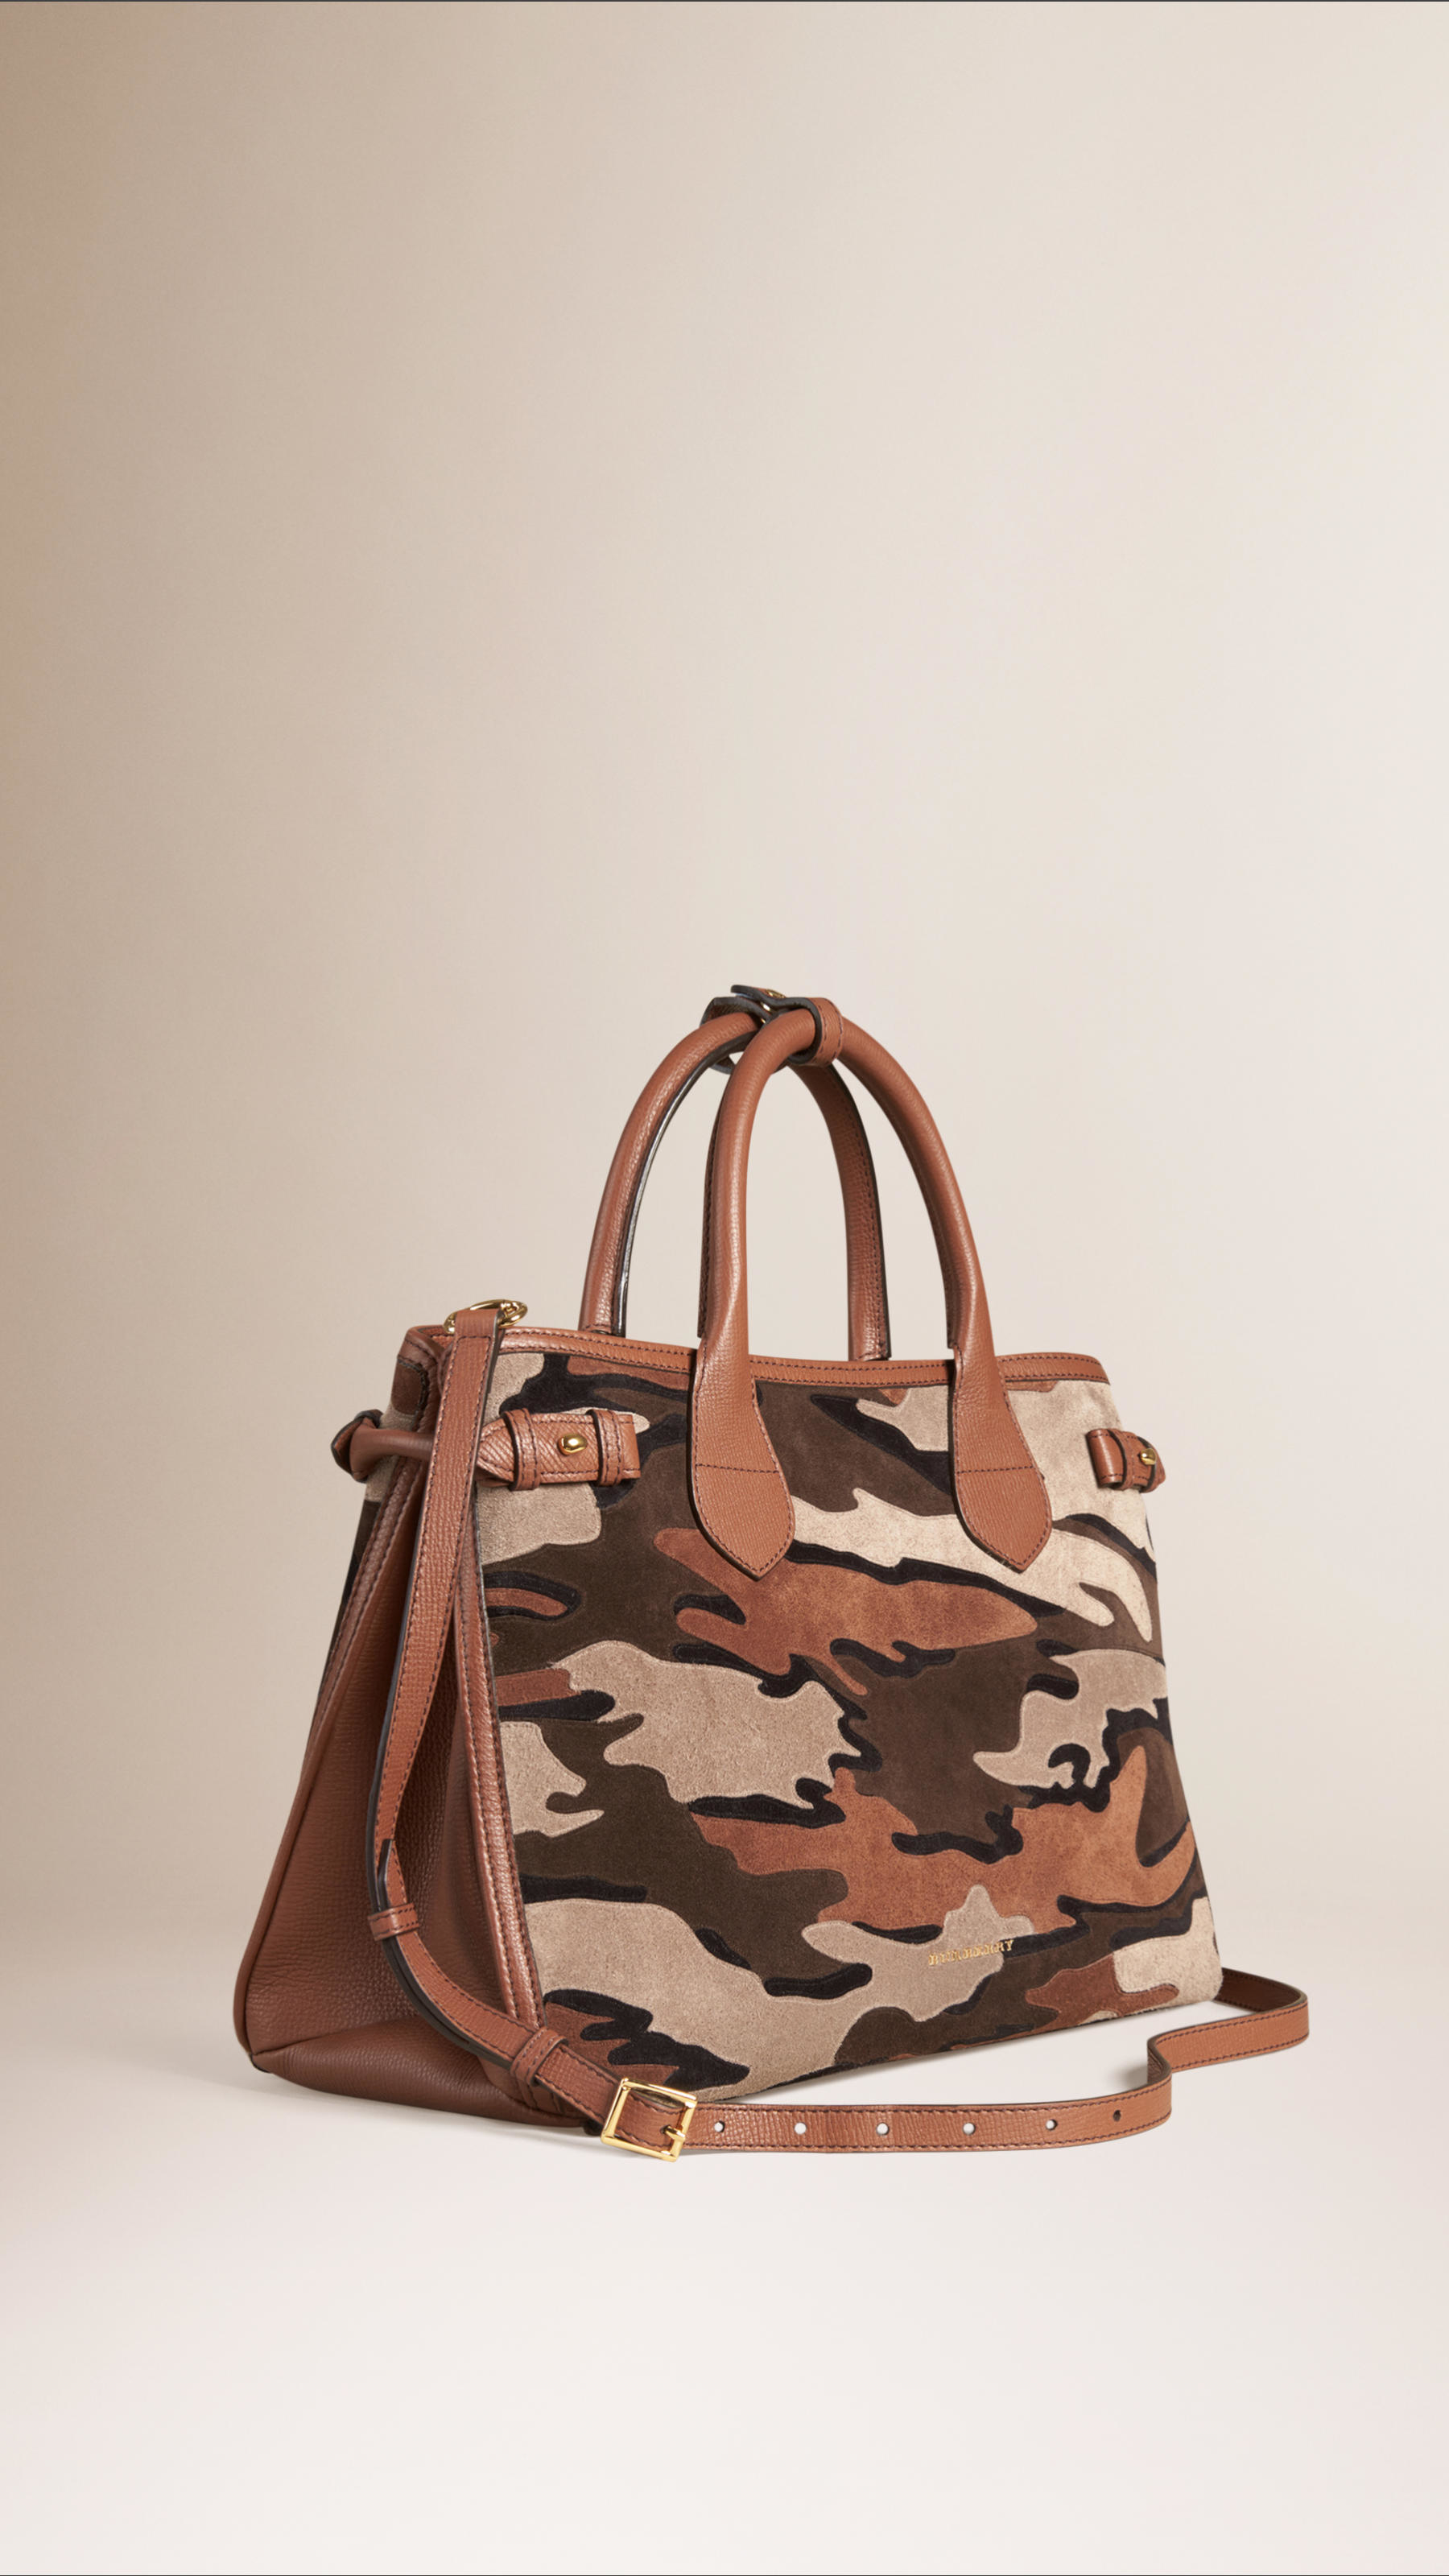 Lyst - Burberry The Medium Banner Camouflage Suede Bag in . cfbdea6e1a9c8